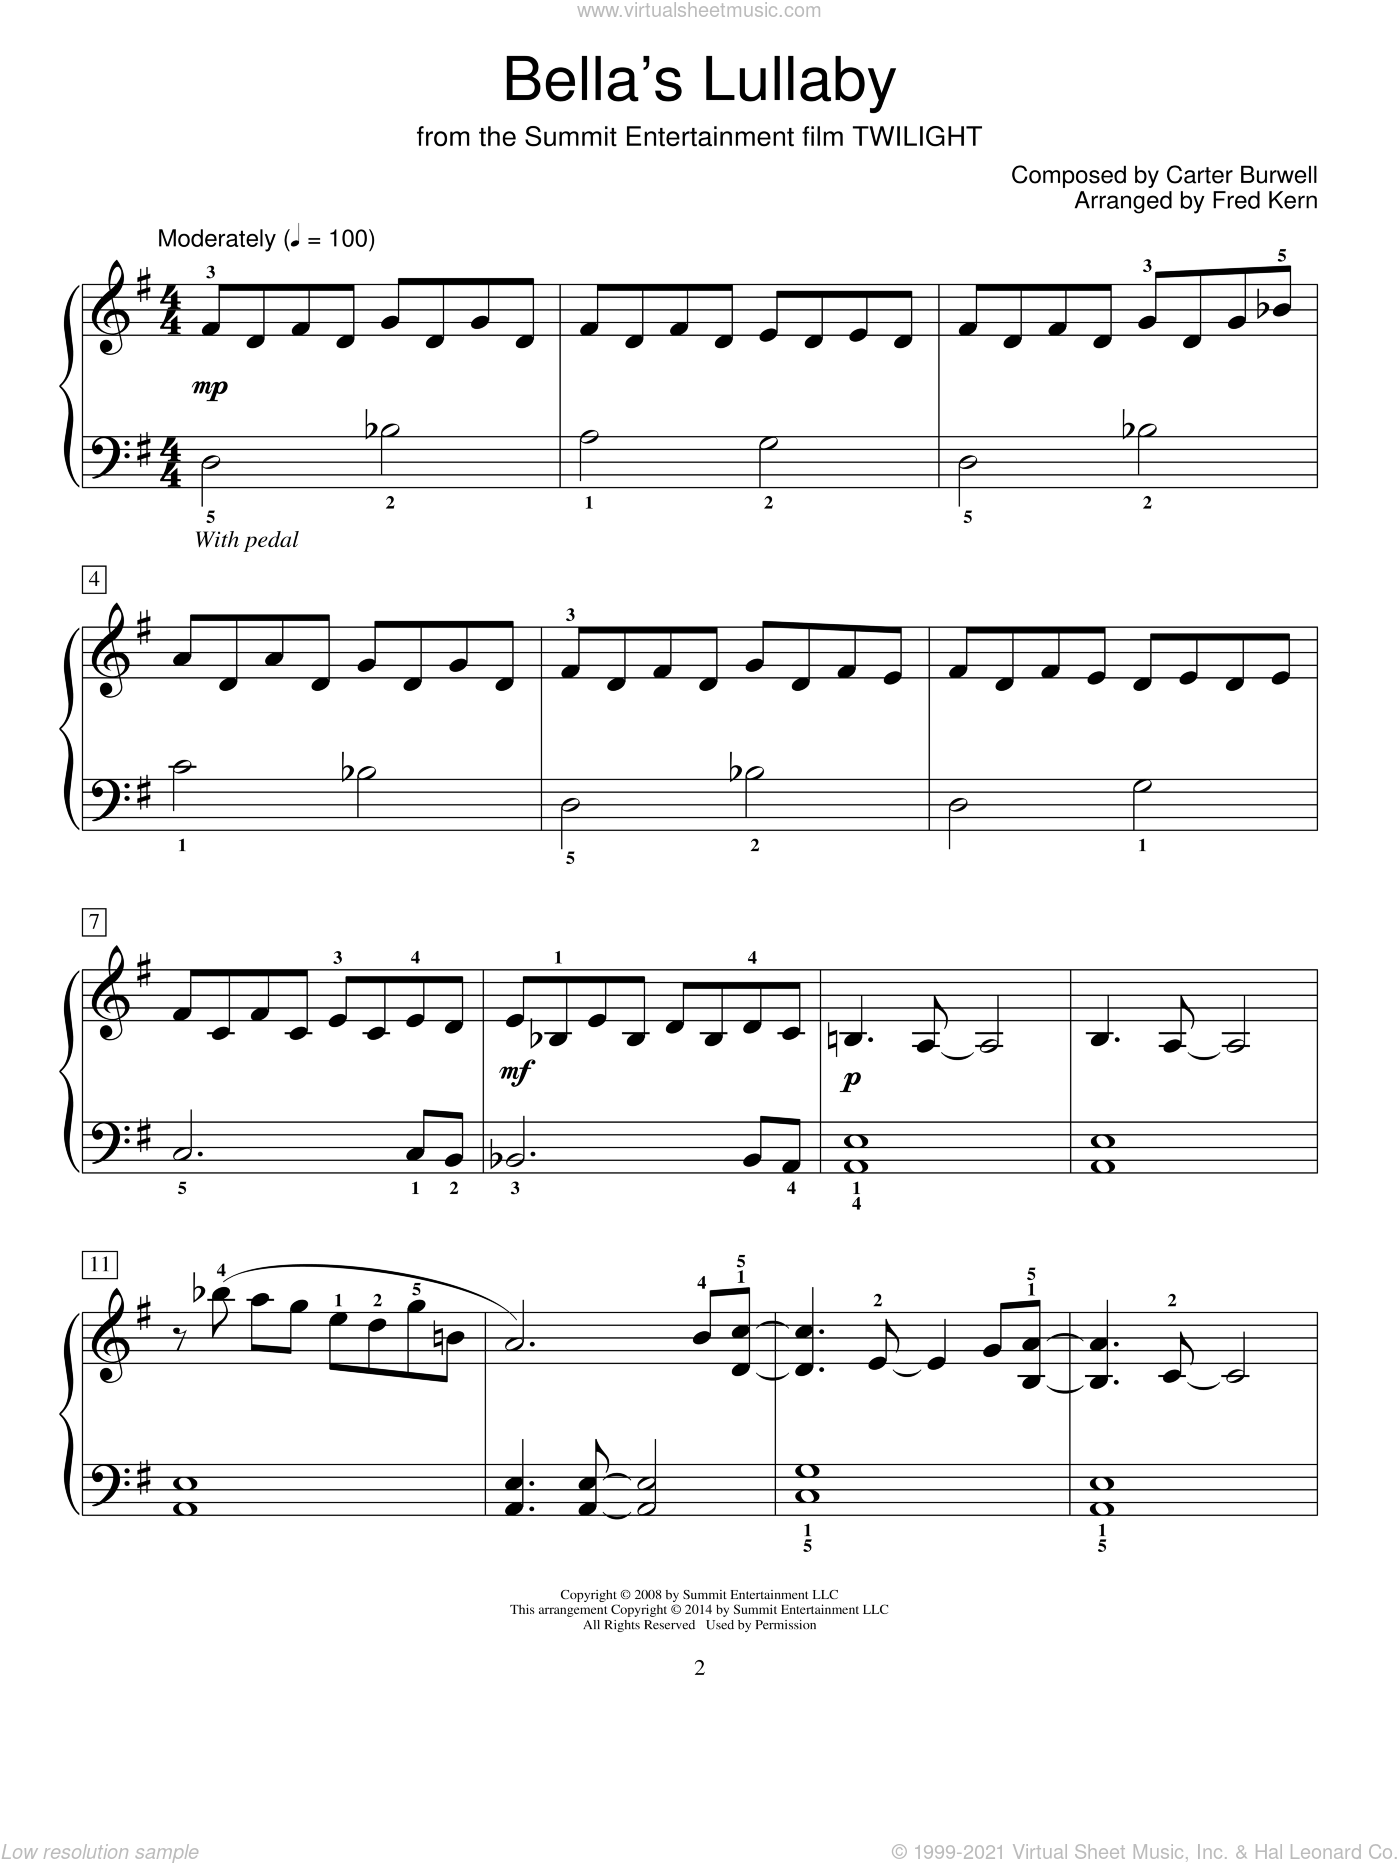 Bella's Lullaby sheet music for piano solo (elementary) by Carter Burwell